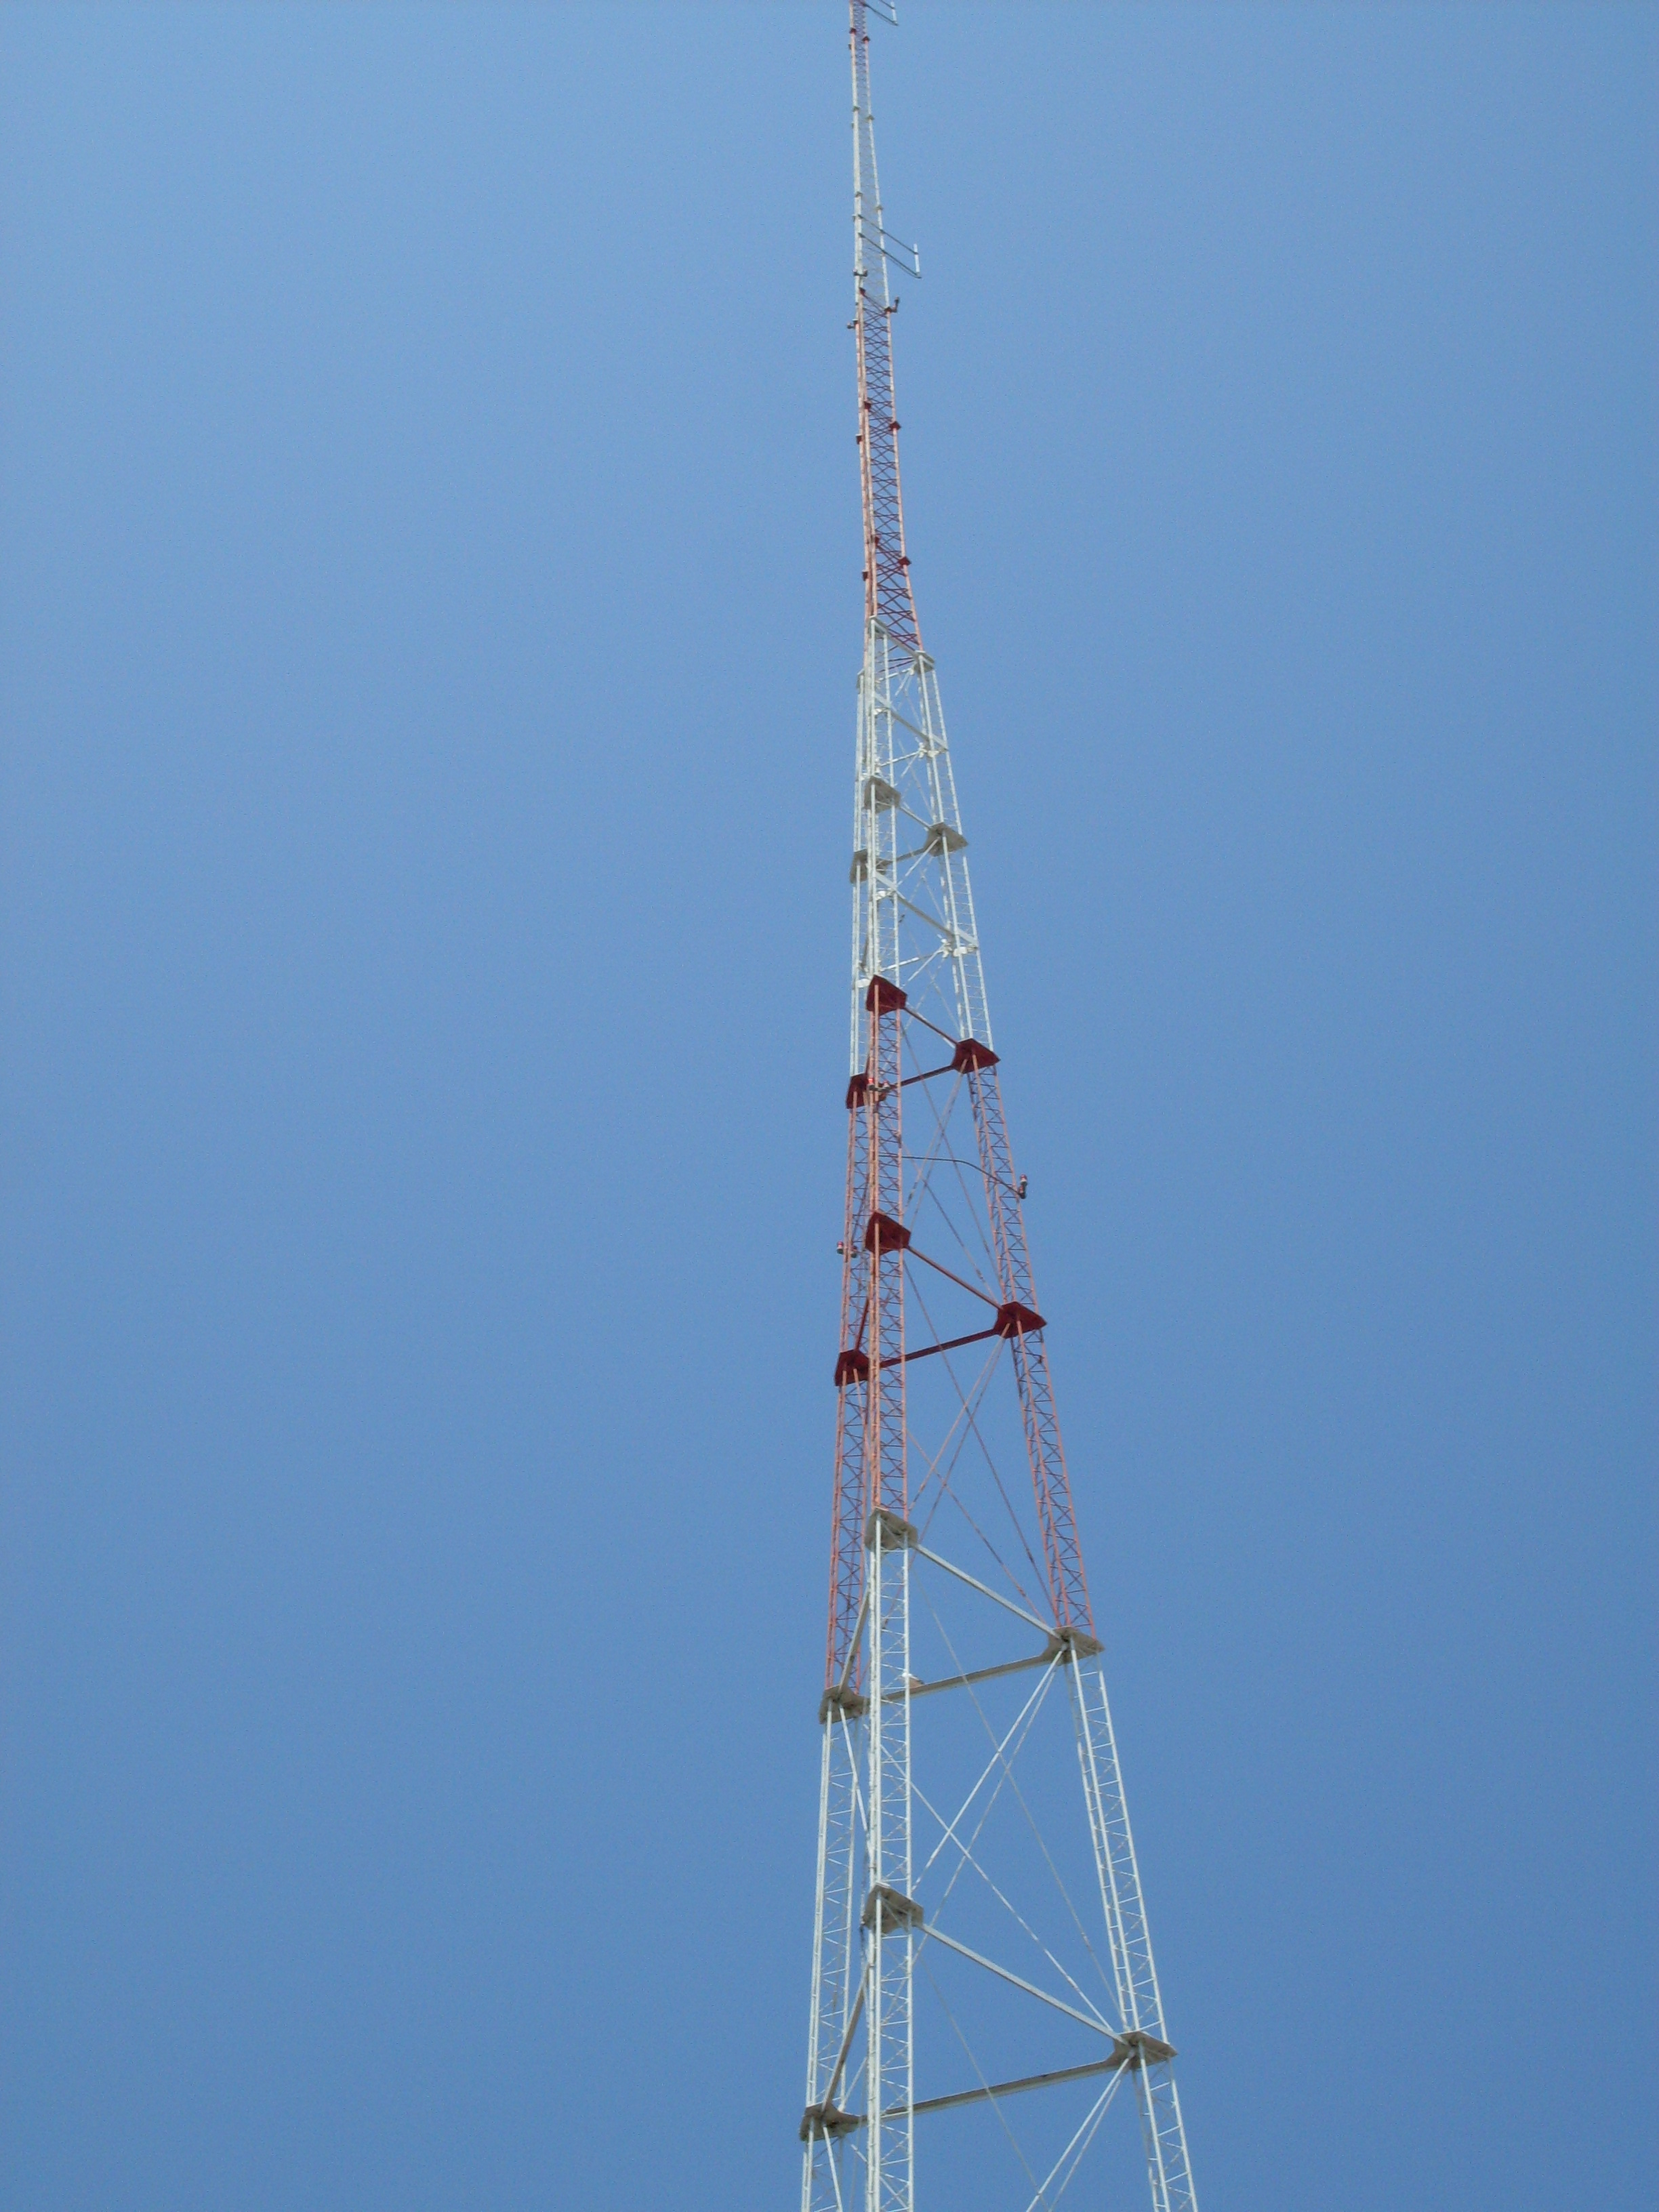 KSFO Transmitter Tower